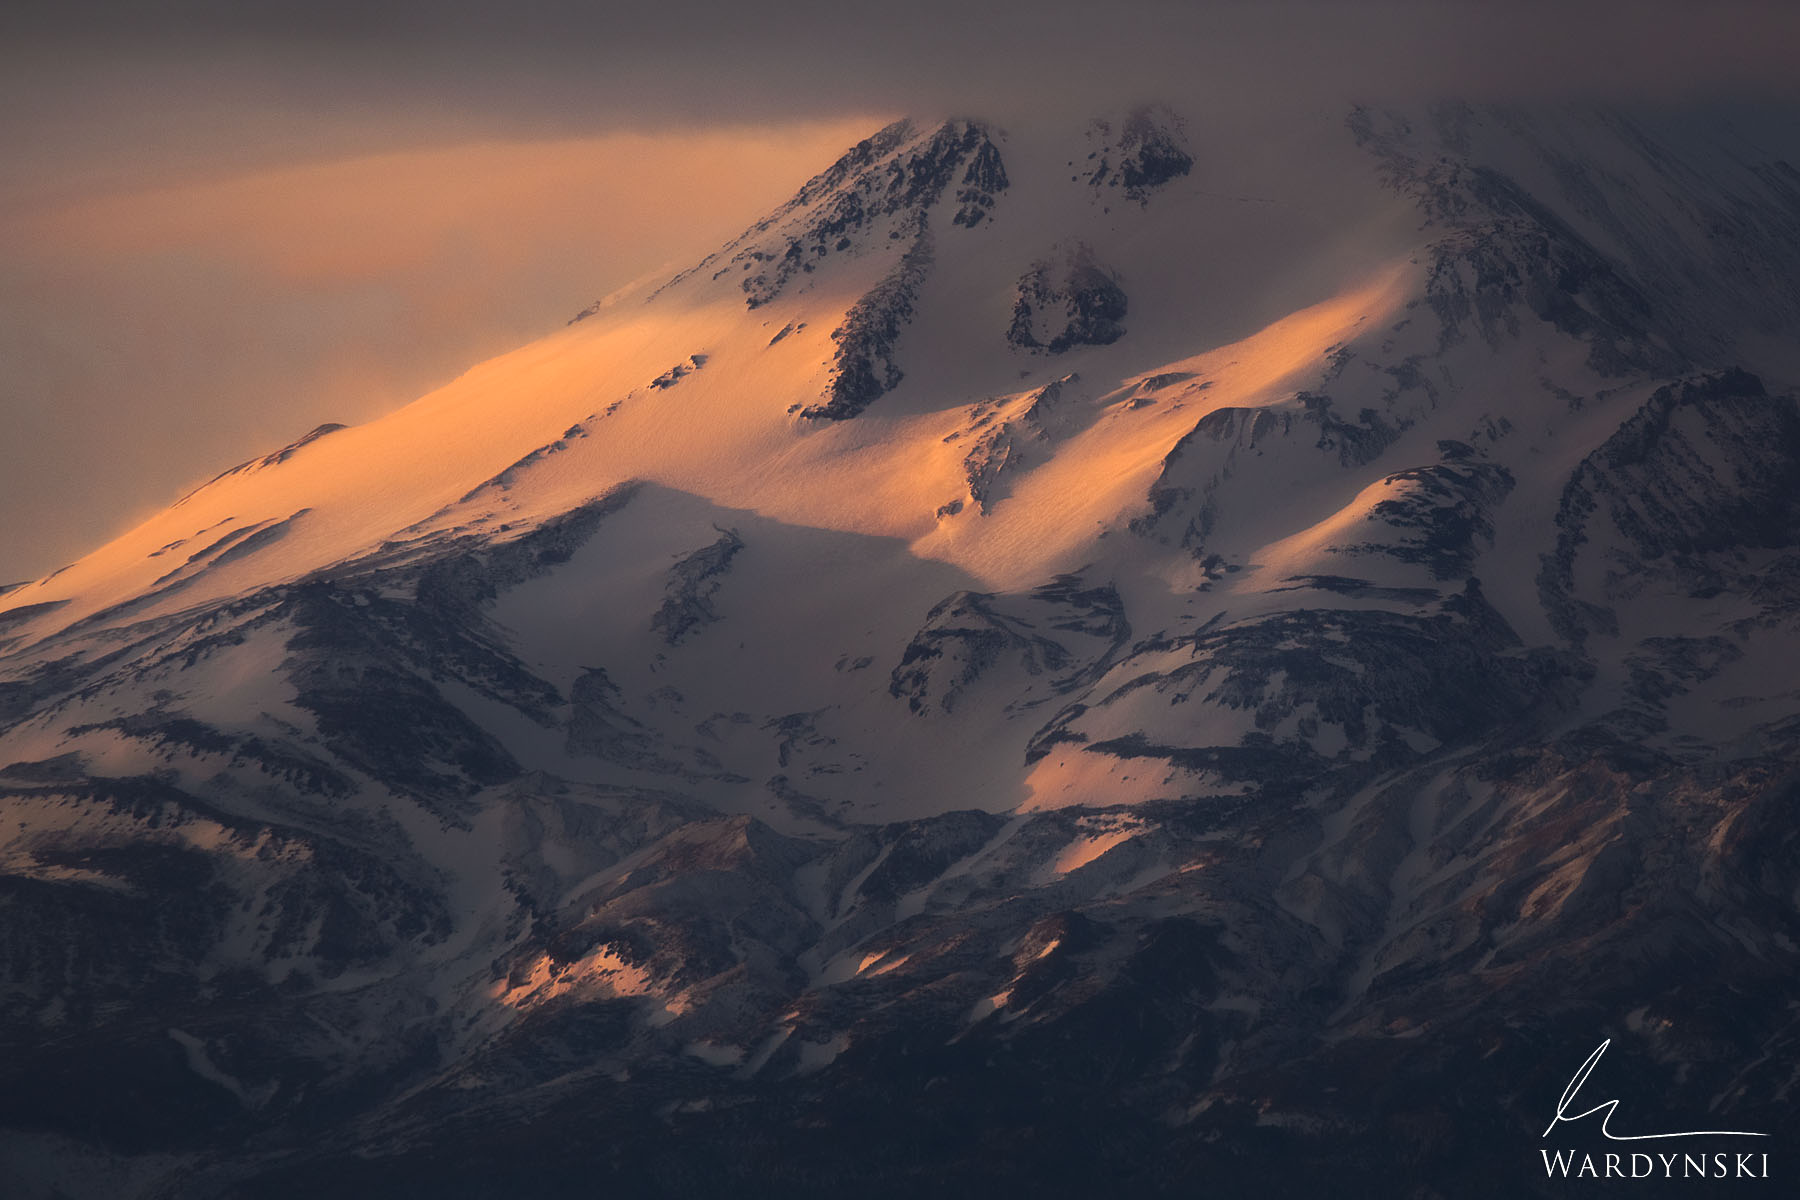 Fine Art Print | Limited Edition of 25  The warm light of sunrise strikes the eastern slope of Mount Shasta in Northern California...